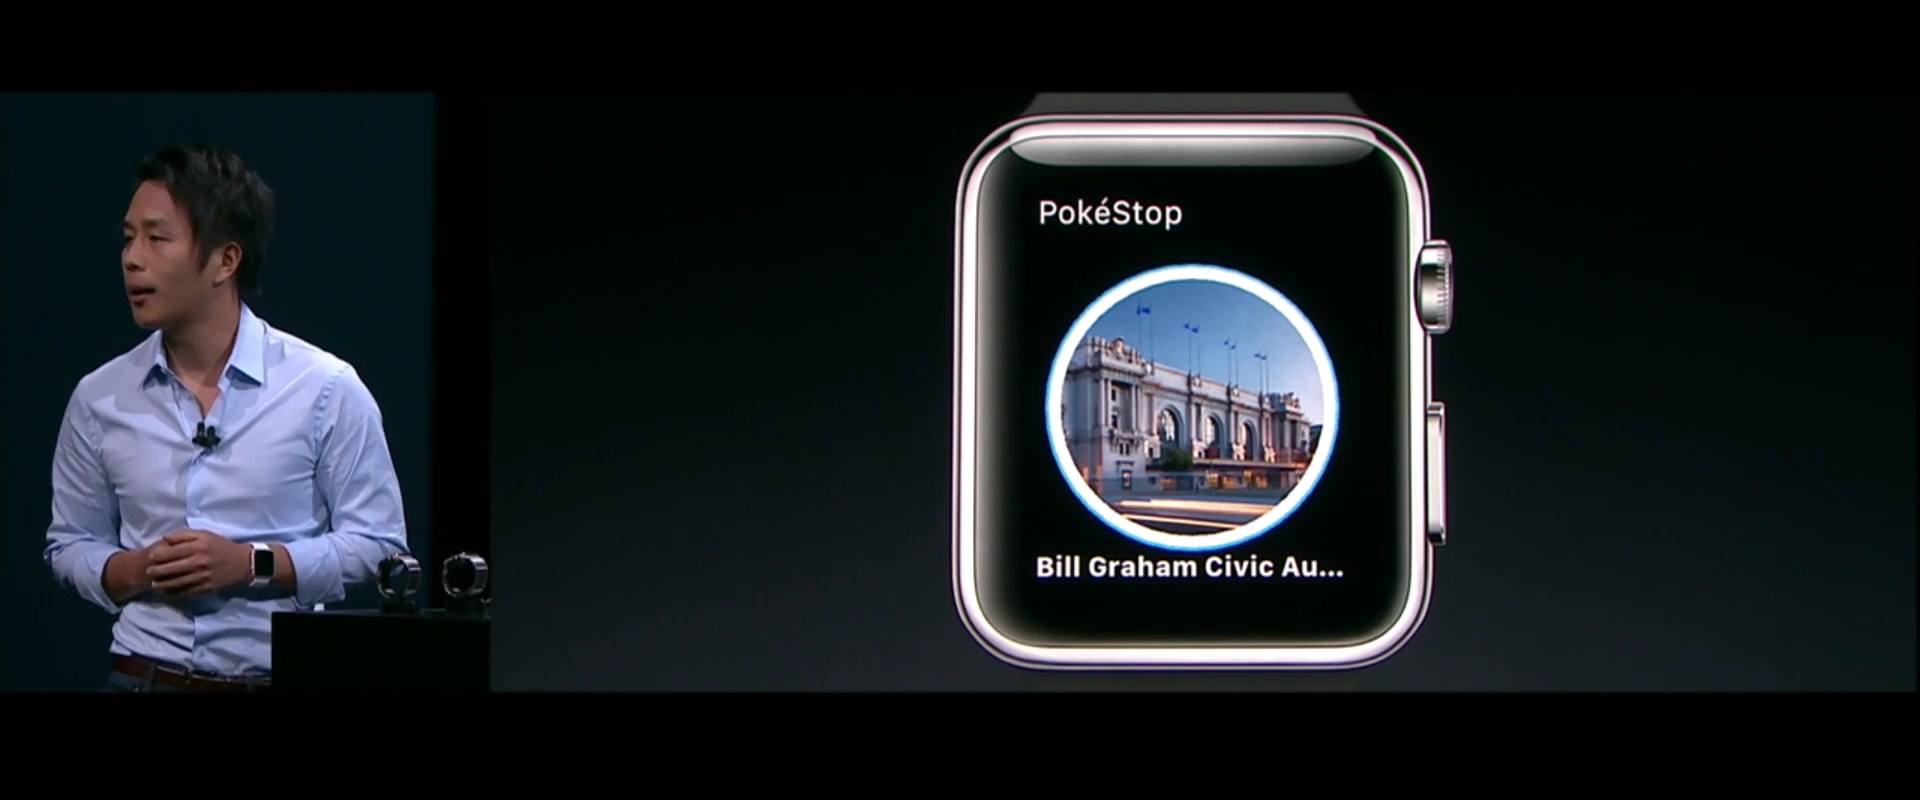 pokemon-go-en-apple-watch-keynote-youtu-be-ns0txu_kzl8-5